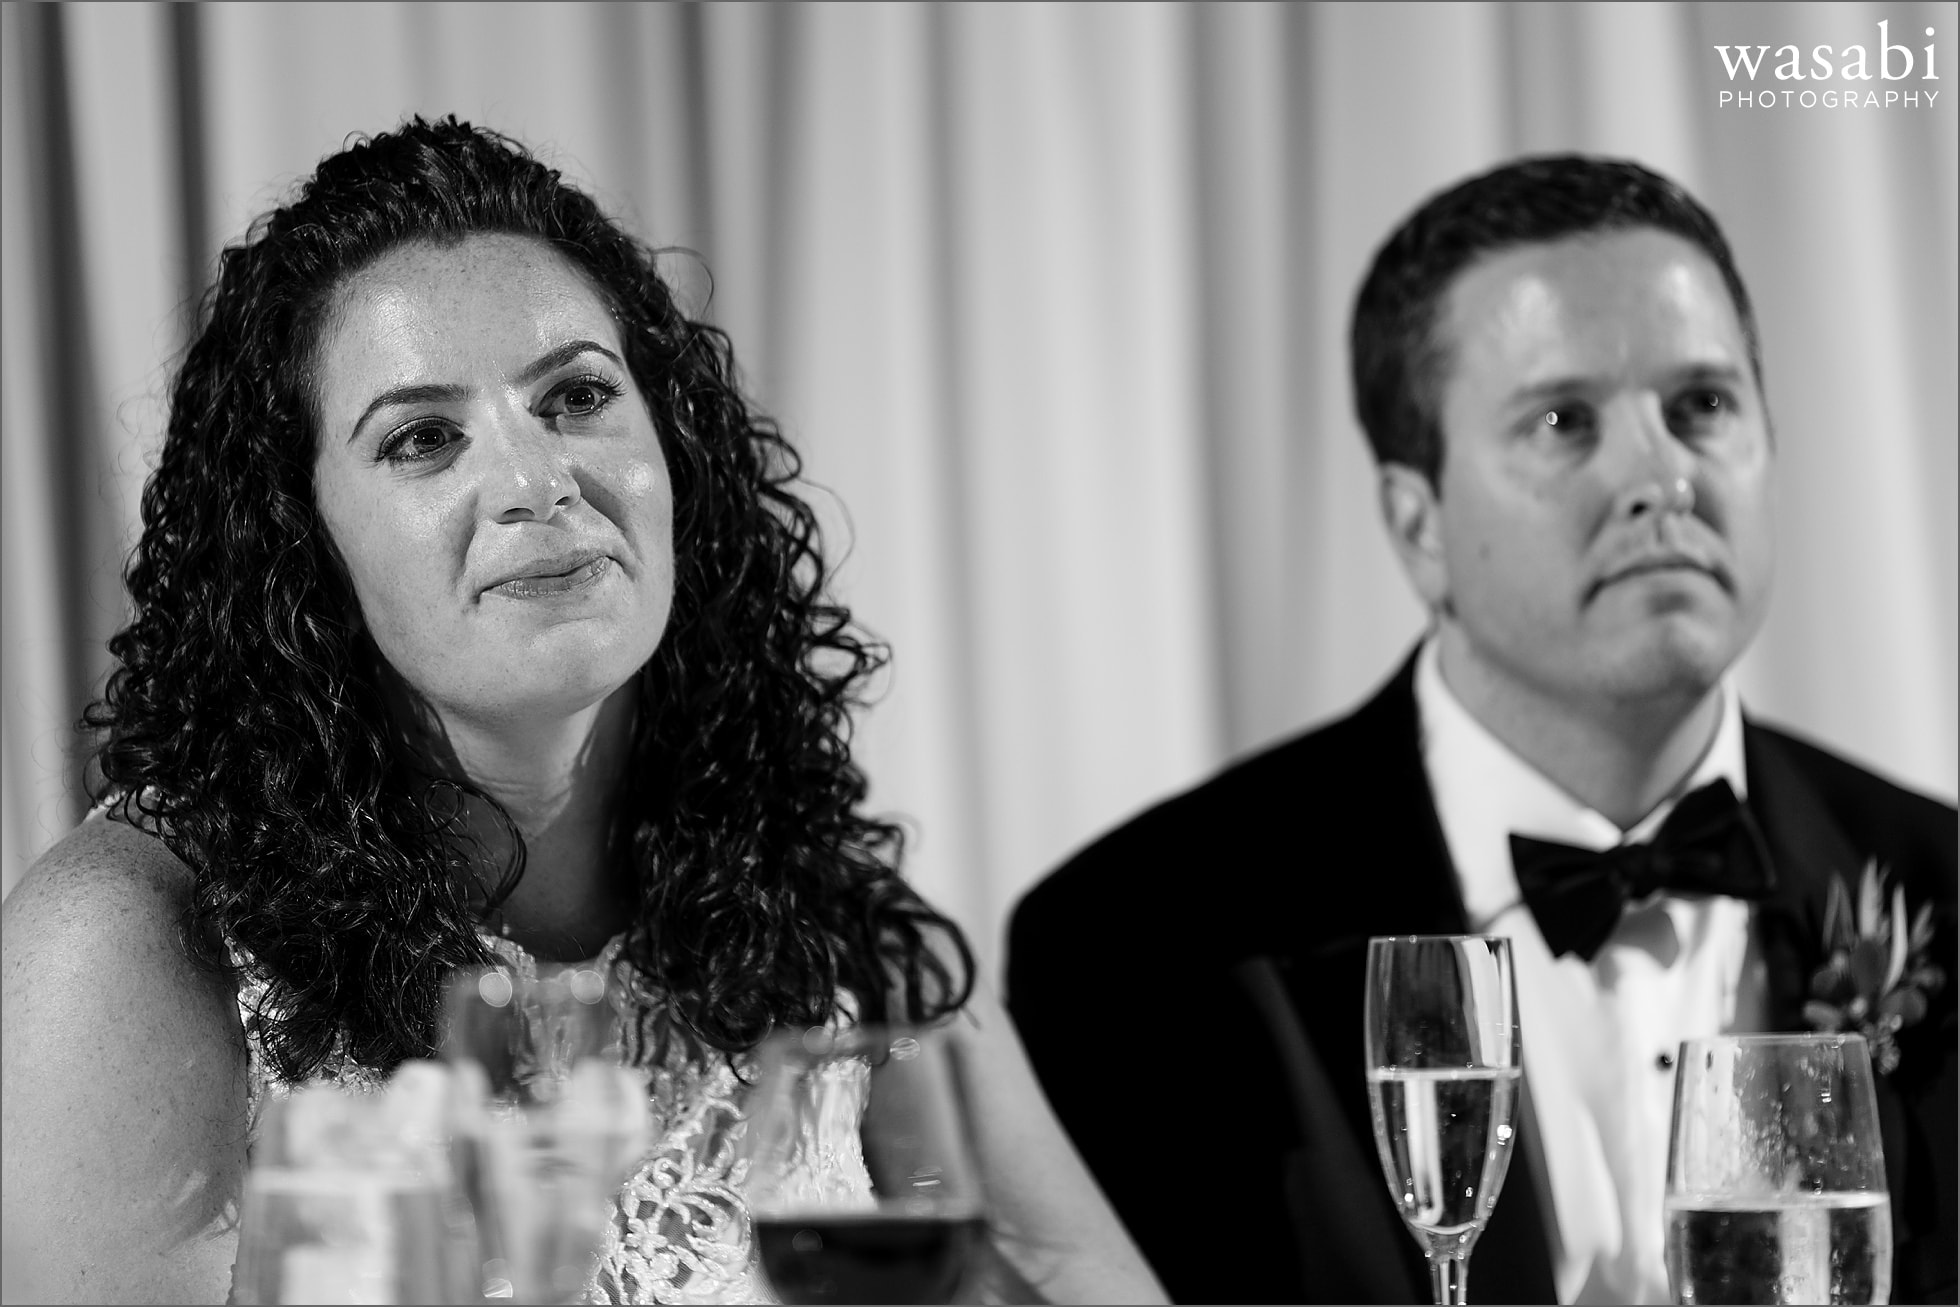 bride and groom listen to toasts during wedding reception at Lombard Westin Hotel